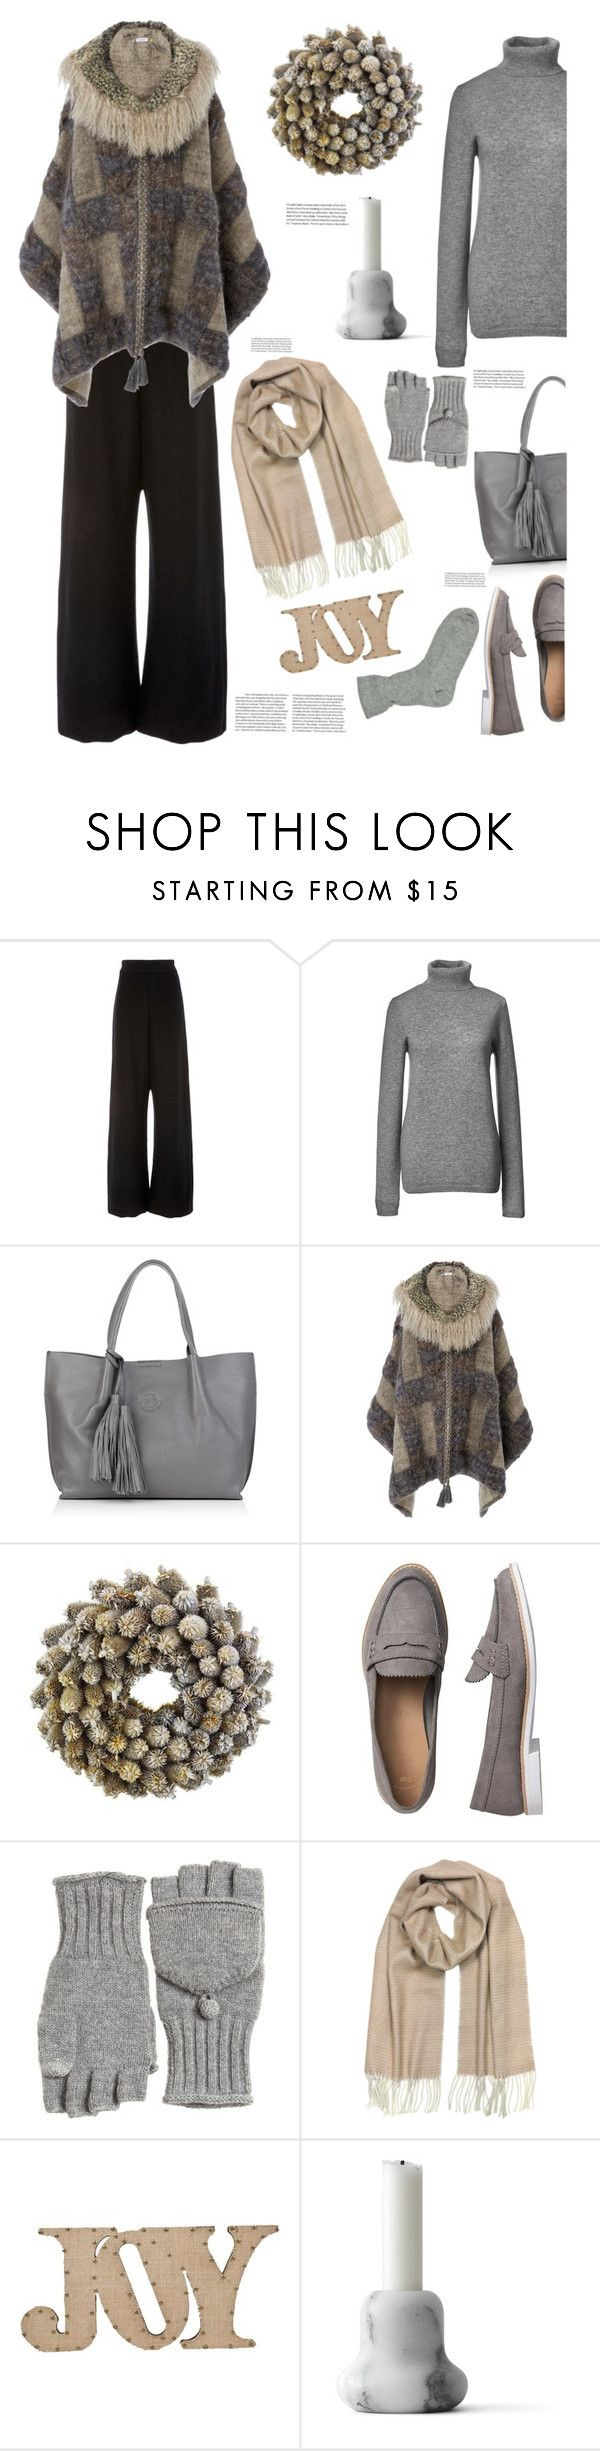 """""""Pleasing to the Senses'"""" by dianefantasy ❤ liked on Polyvore featuring Tuinch, Lands' End, Nadia Minkoff, Shea's Wildflower Company, Gap, Calypso St. Barth, Mila Schön, Home Essentials and Pantherella"""